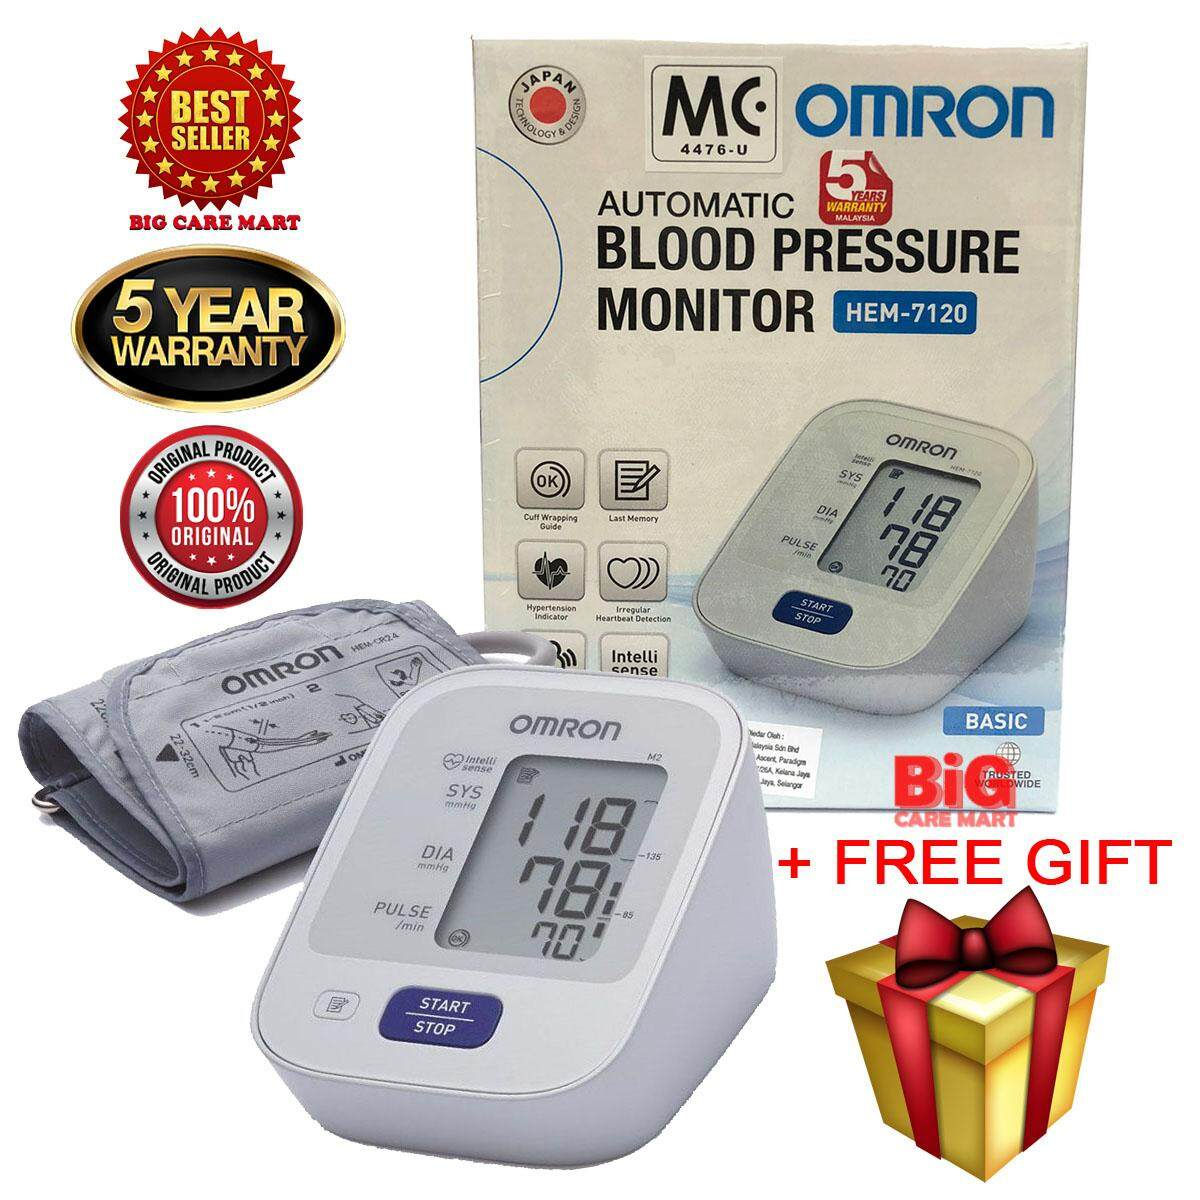 Omron Products With Best Online Price In Malaysia Thermometer Digital Mc 245 Blood Pressure Monitors